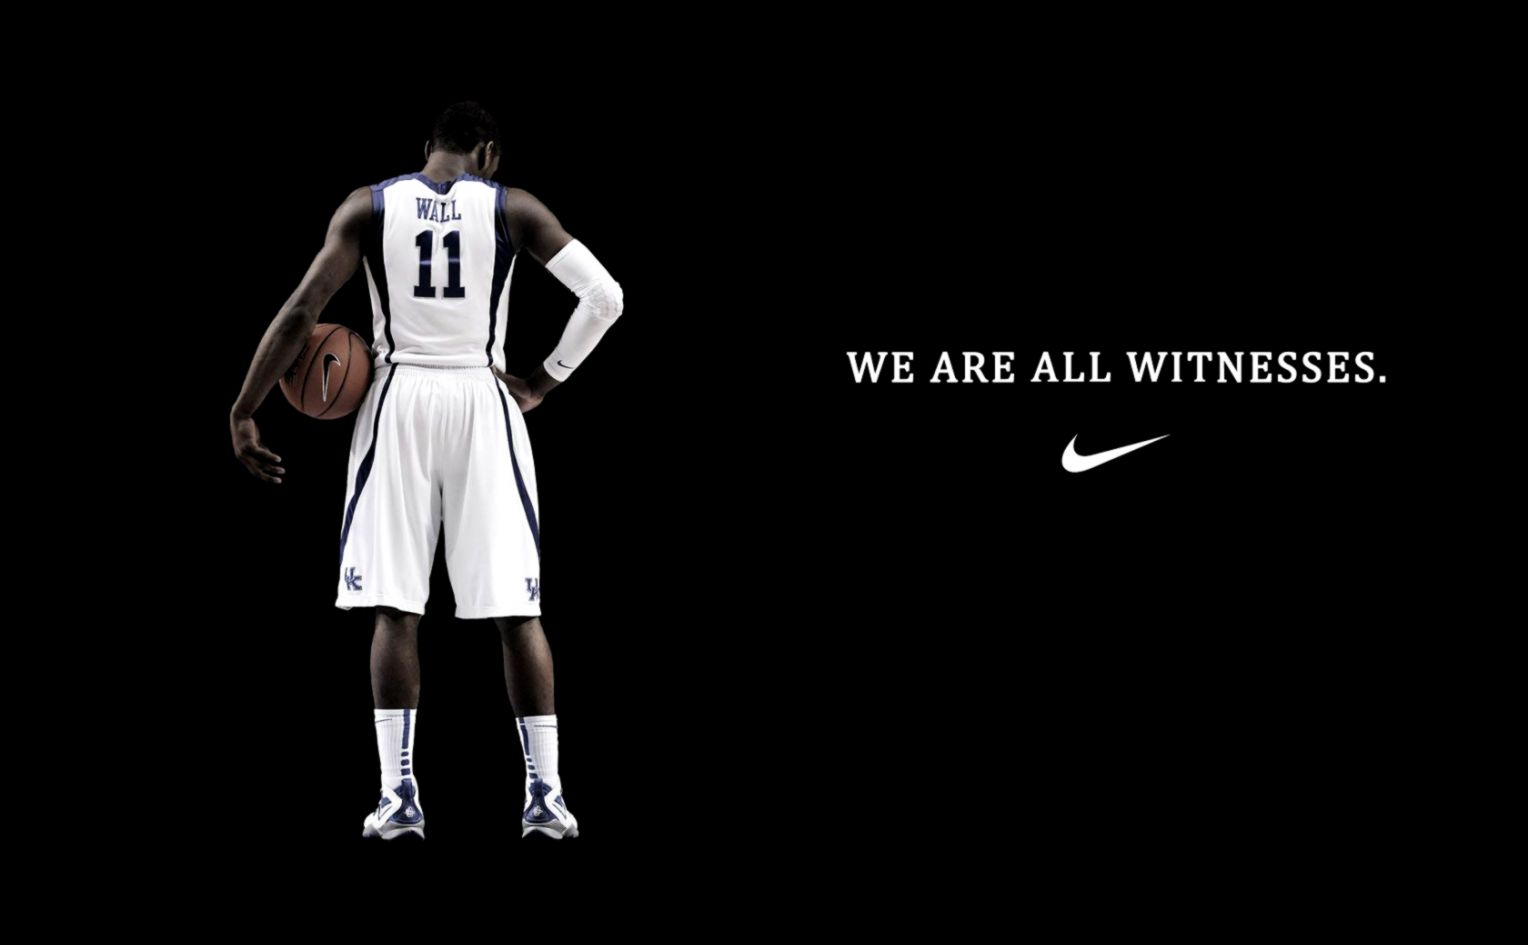 low priced 3c3f0 46238 basketball quotes wallpaper Page 3 of 3